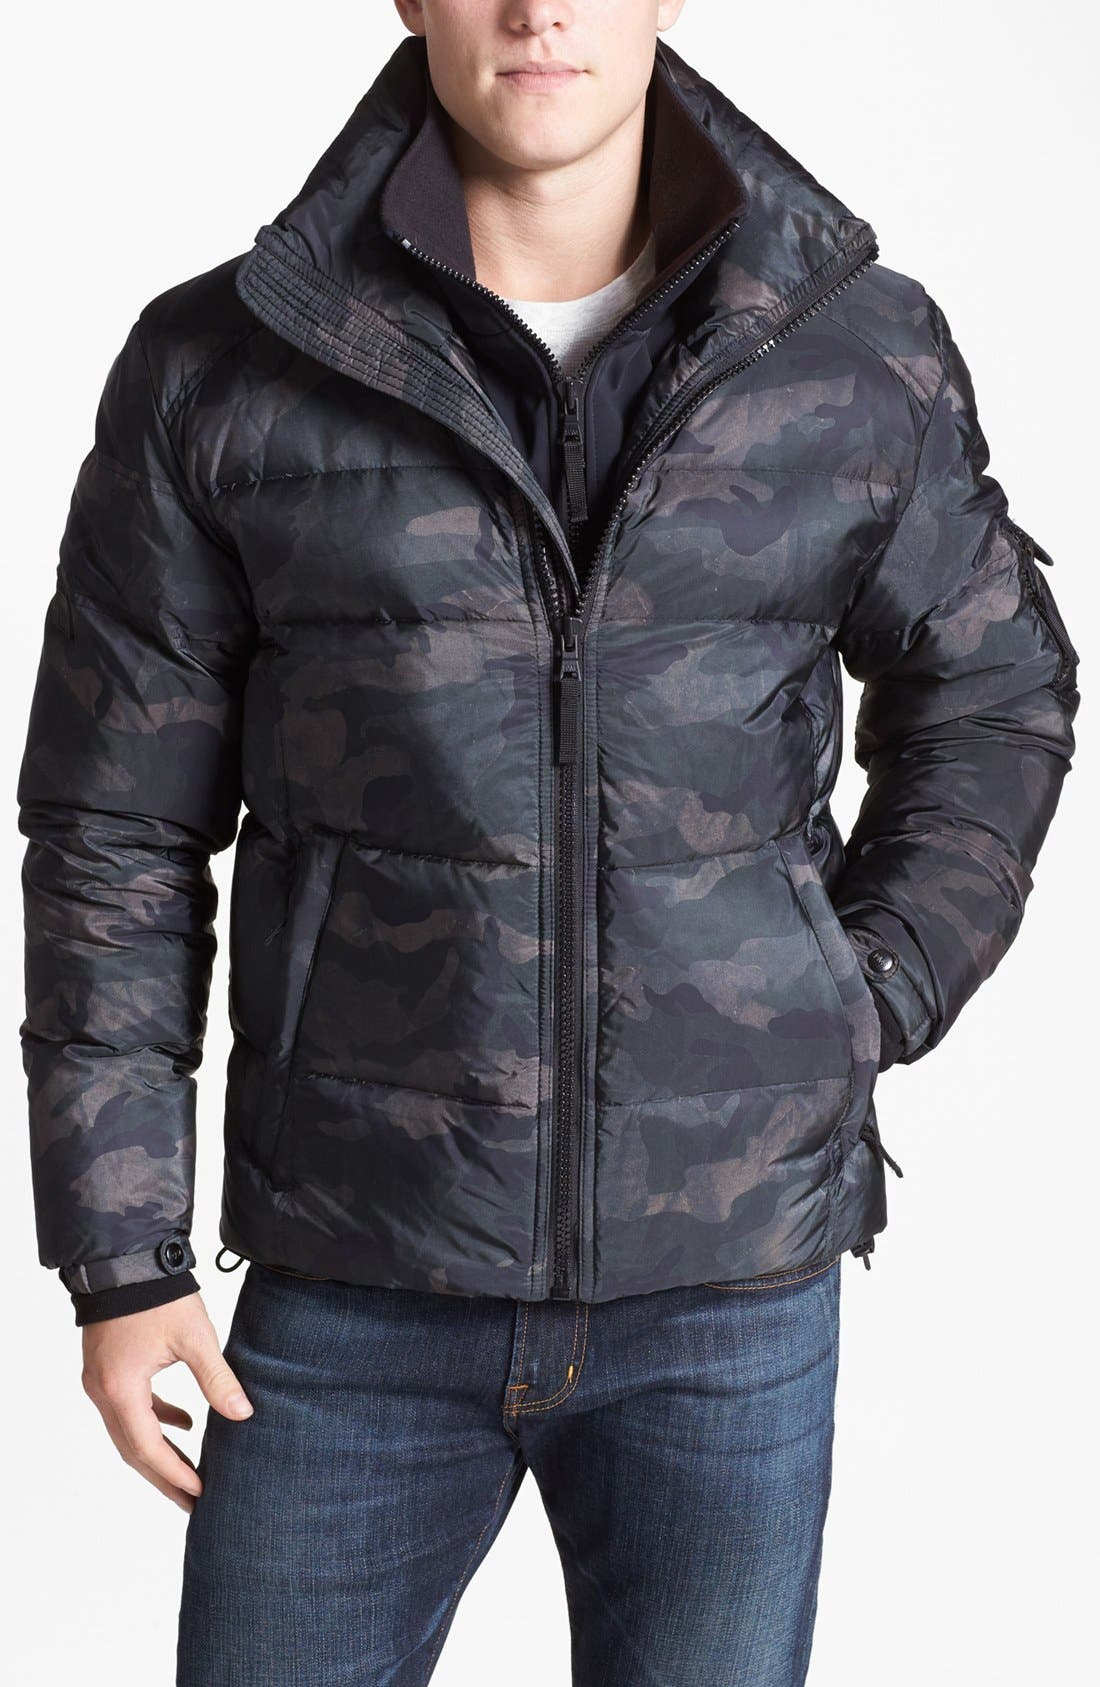 Alternate Image 1 Selected - SAM 'Racer' Camouflage Water Resistant Puffer Jacket